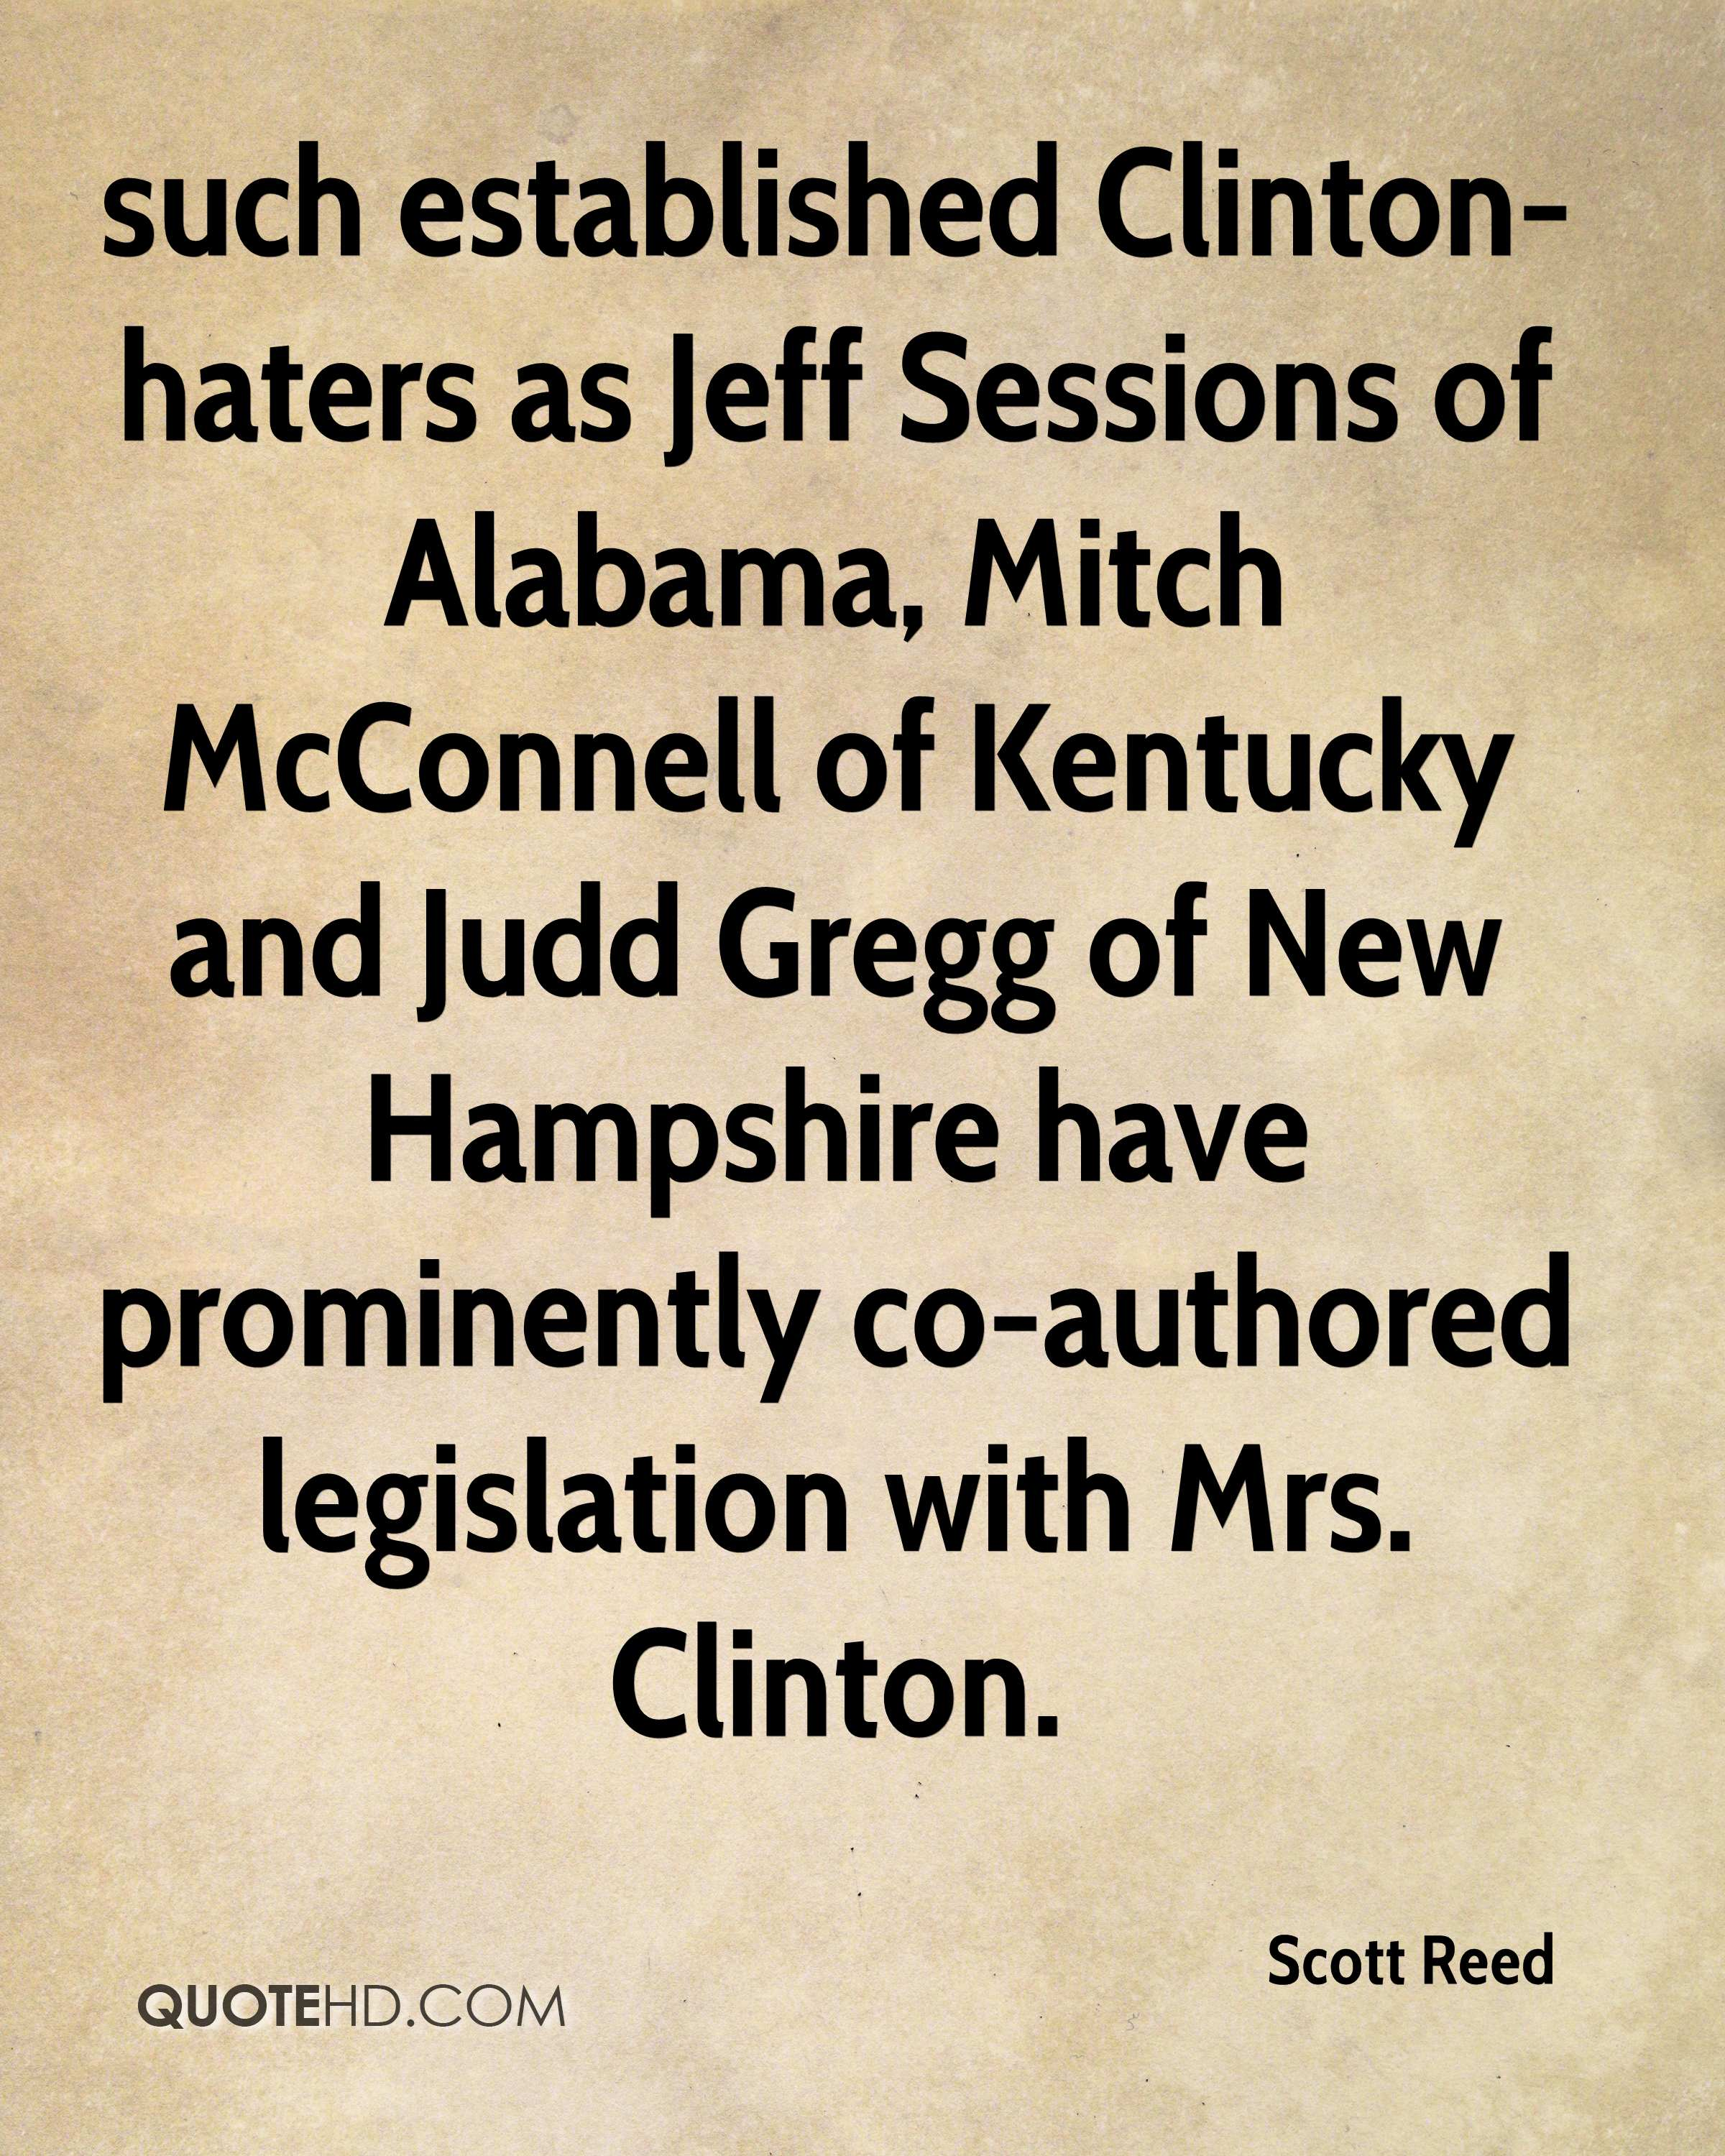 such established Clinton-haters as Jeff Sessions of Alabama, Mitch McConnell of Kentucky and Judd Gregg of New Hampshire have prominently co-authored legislation with Mrs. Clinton.